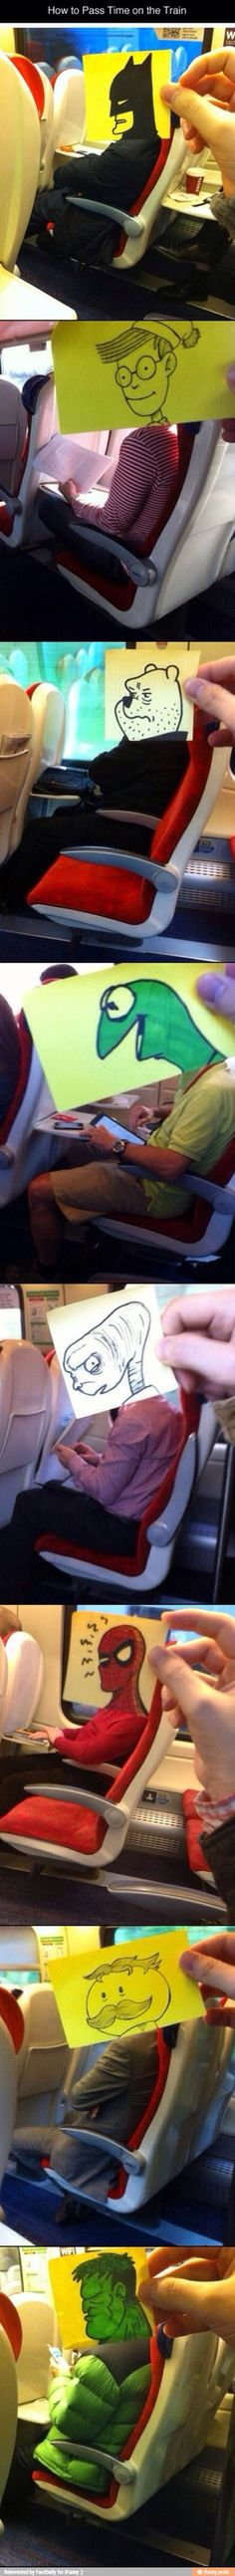 How to pass time on a train...well, if you're an artist and ride trains.....A LOT!!